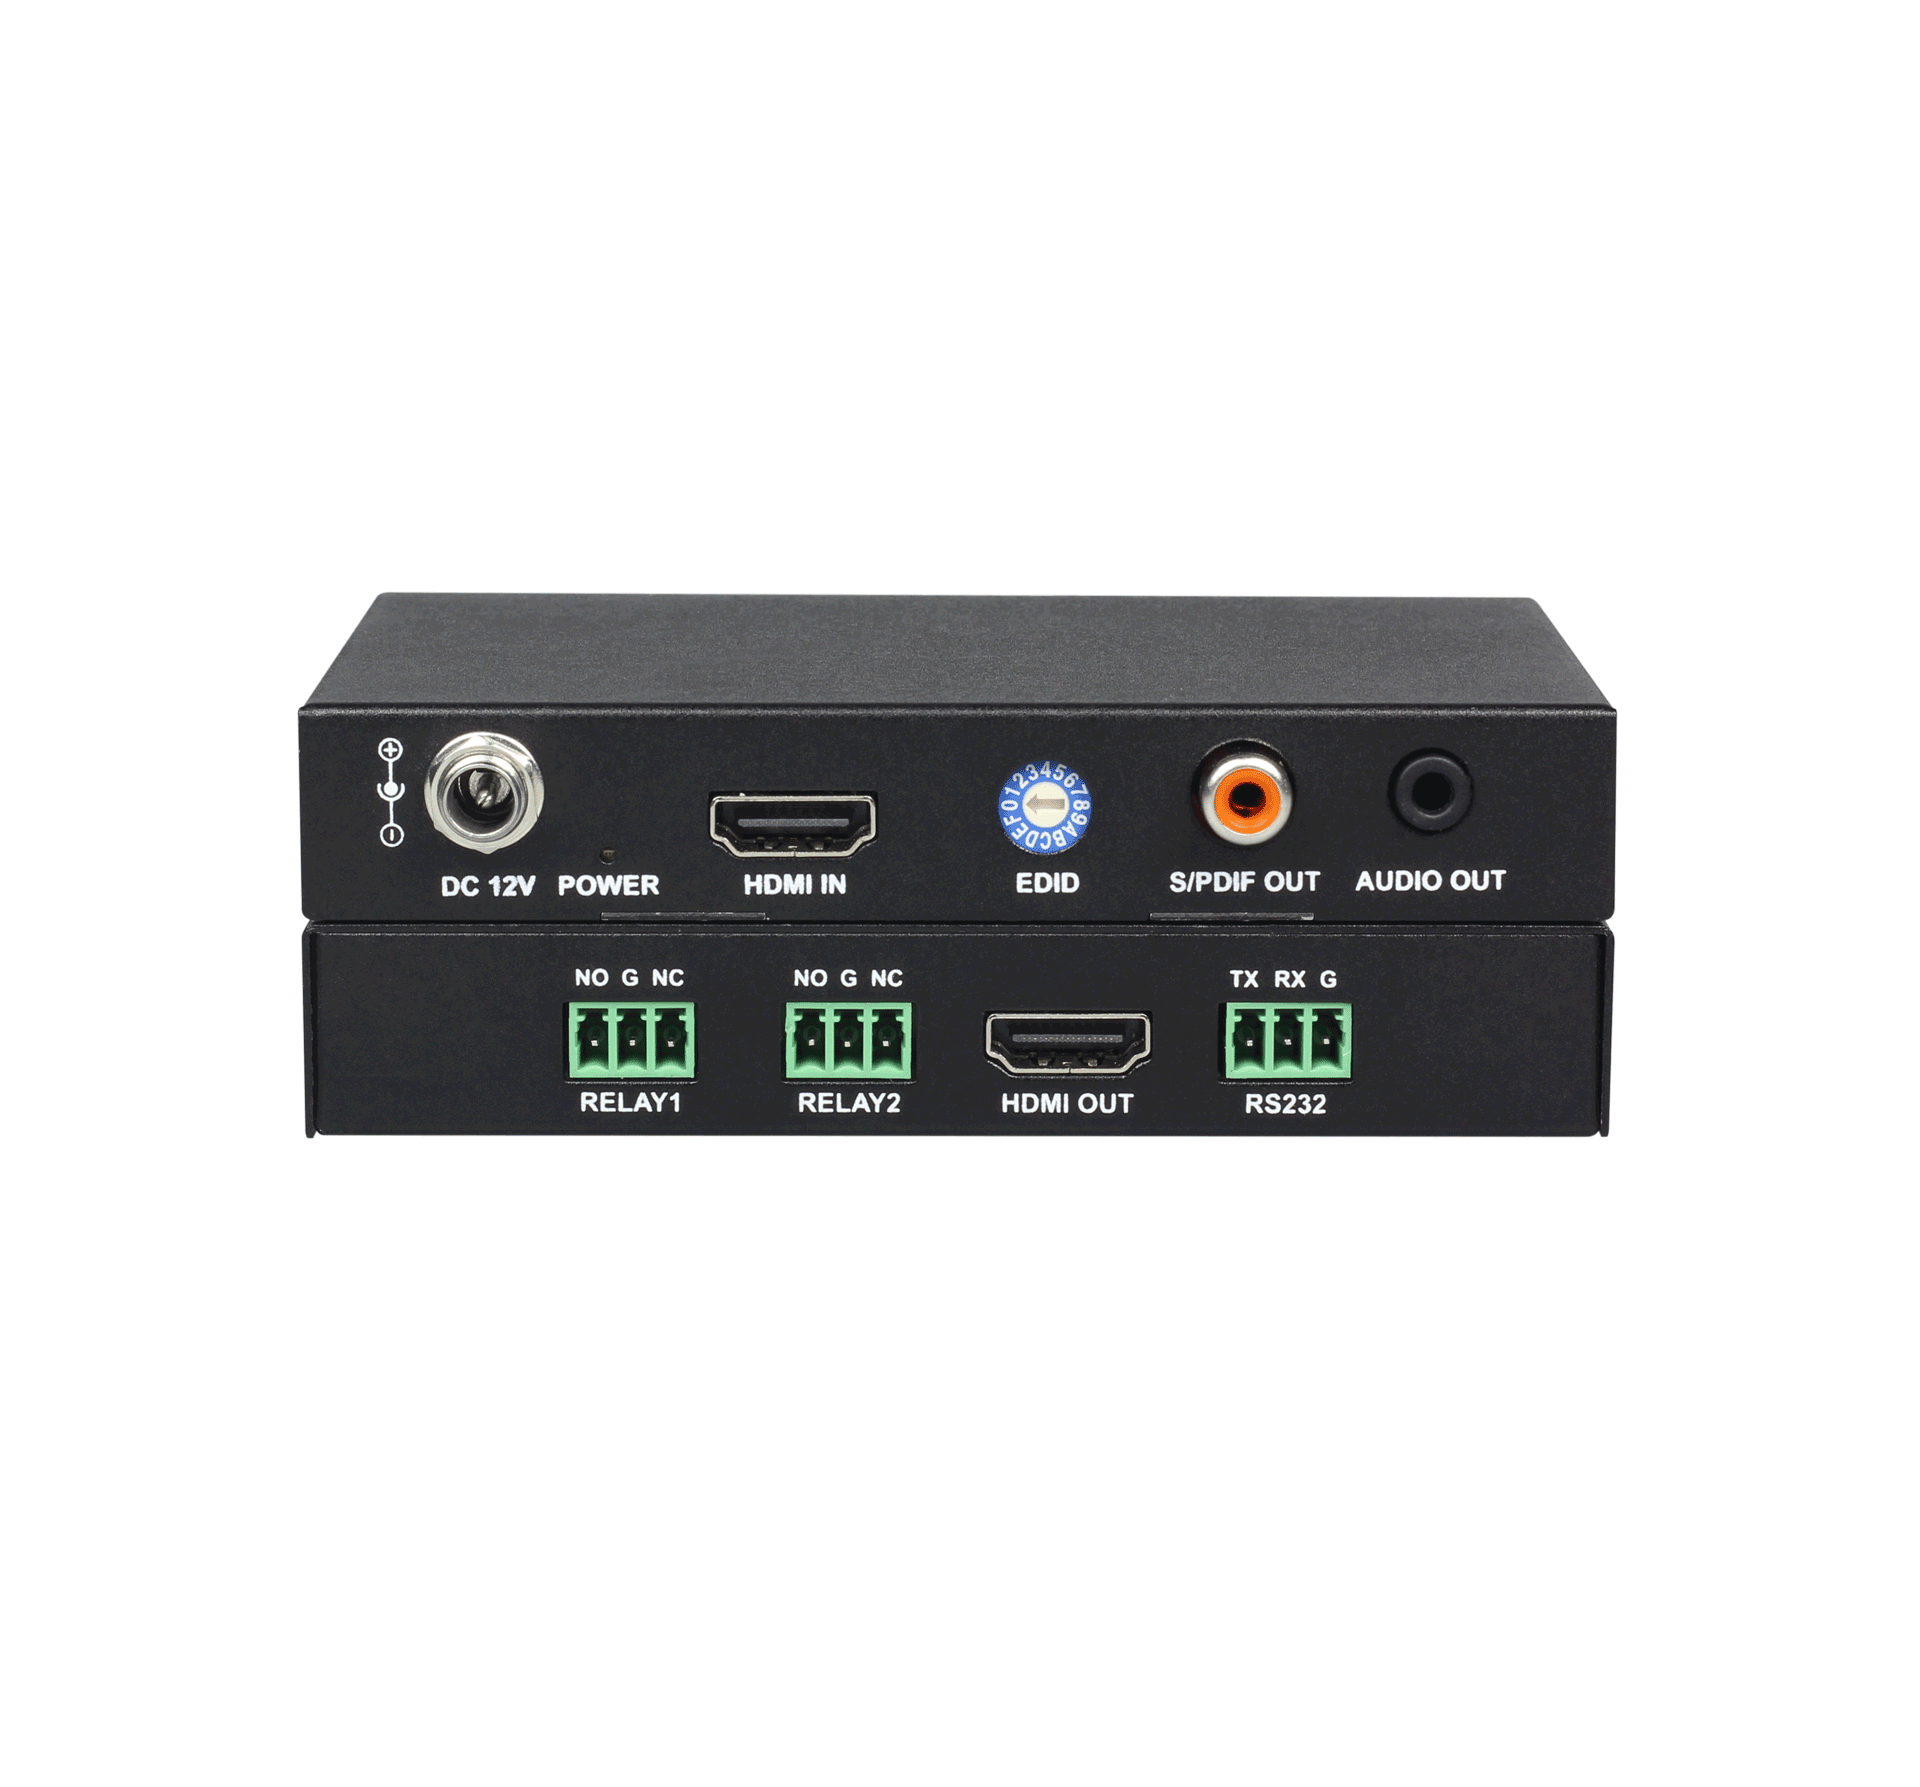 CPA562 - Controleur automatique HDMI